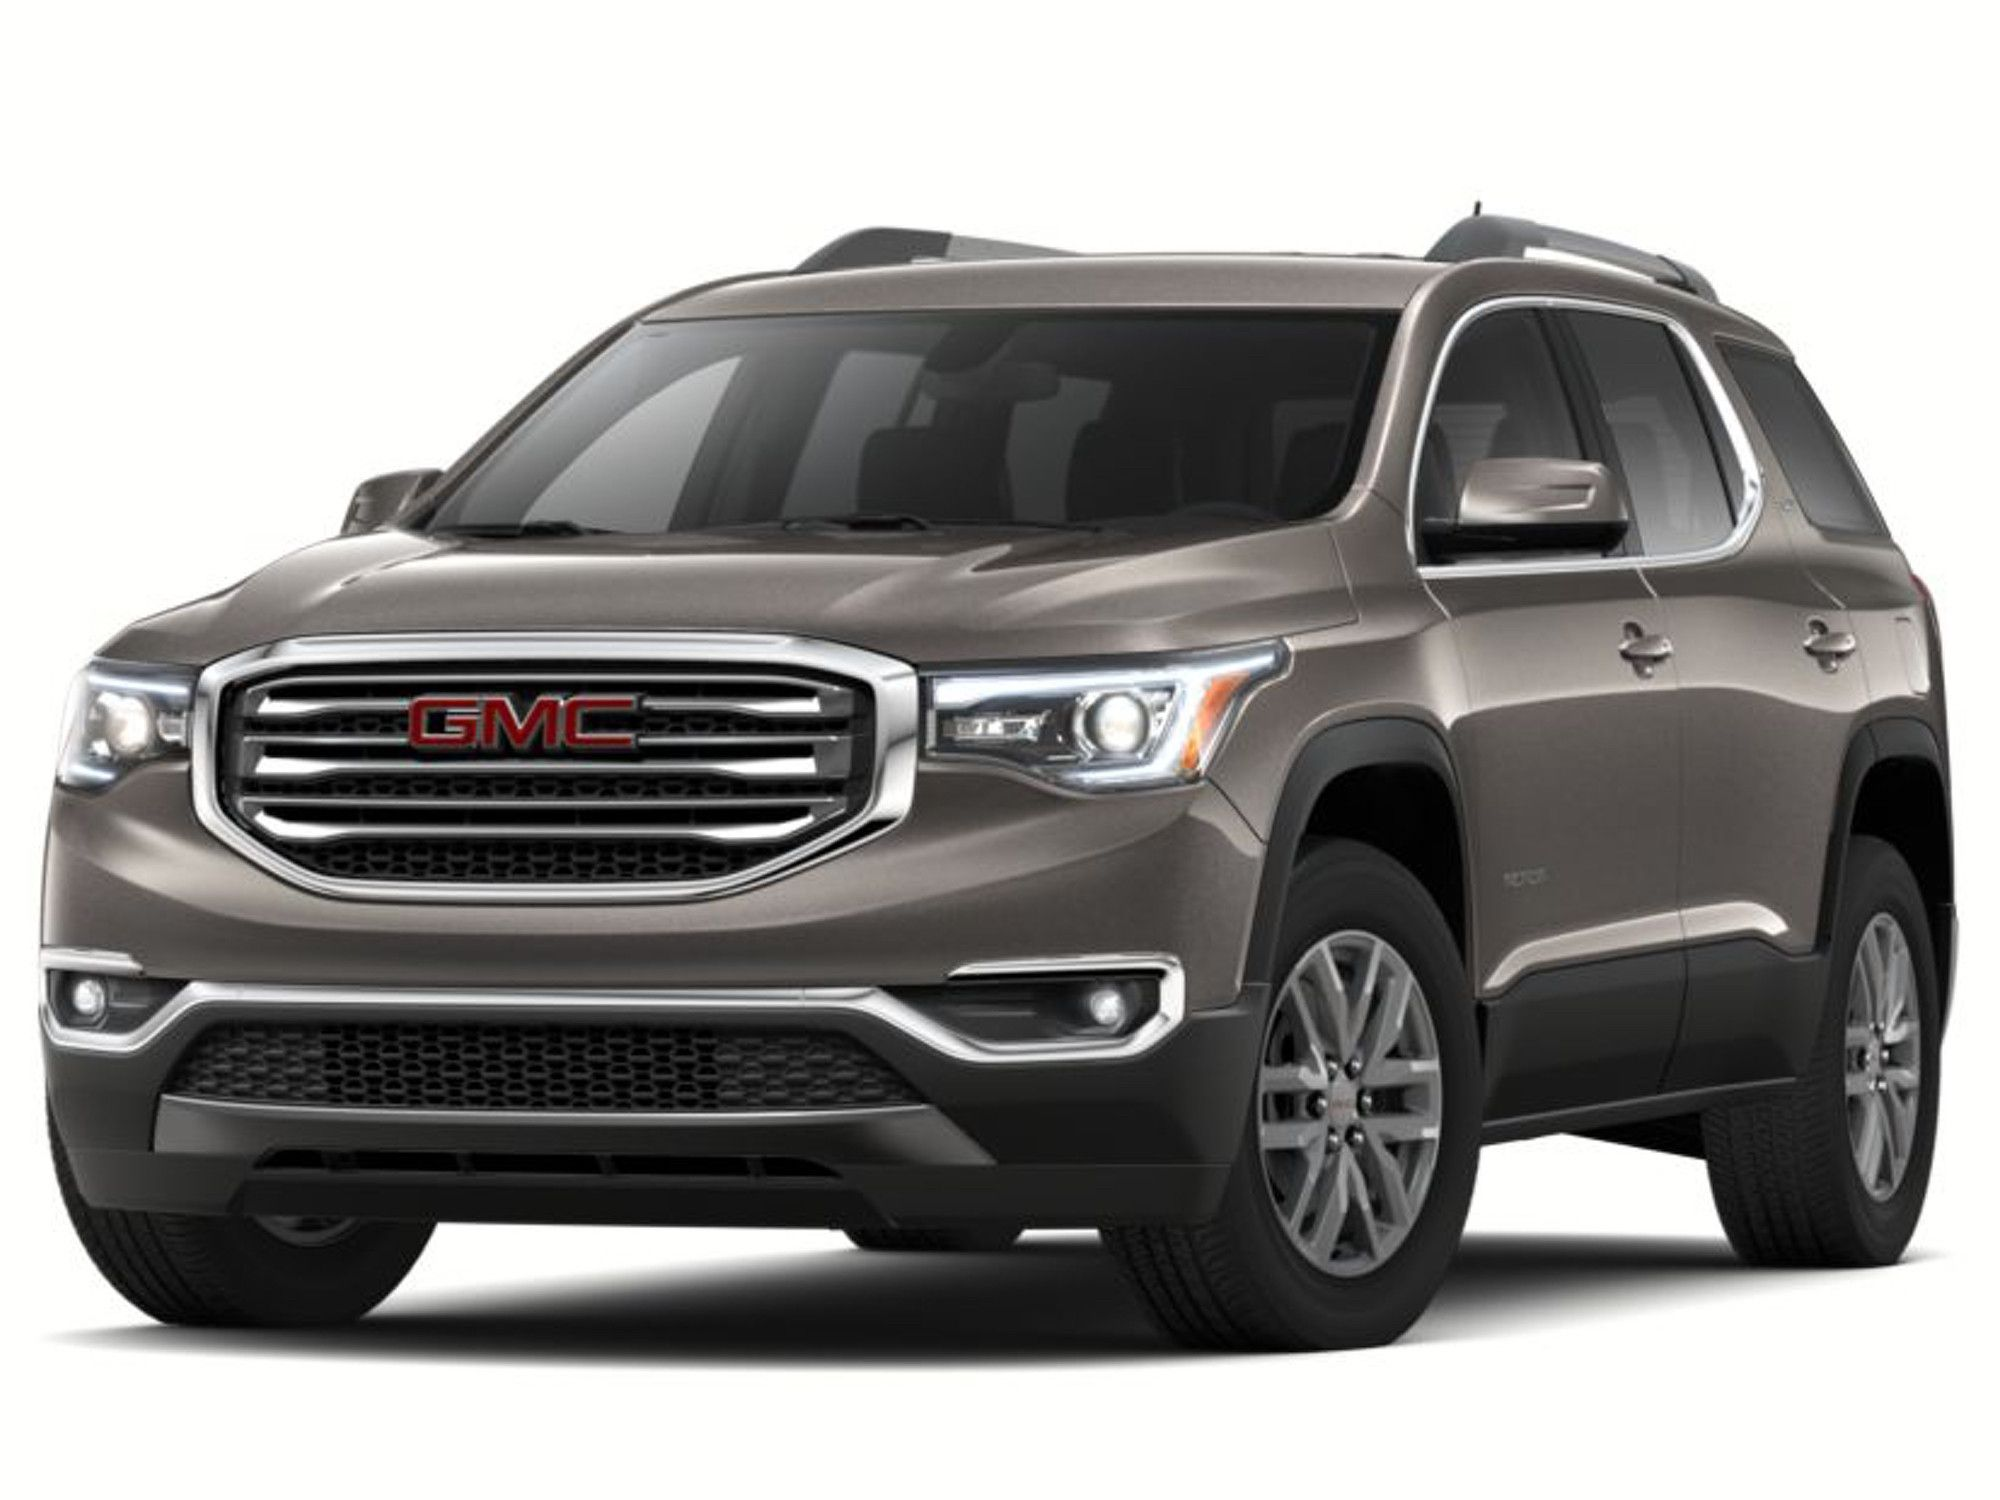 2020 Gmc Acadia Smokey Quartz Metallic Review And Specs Smokey